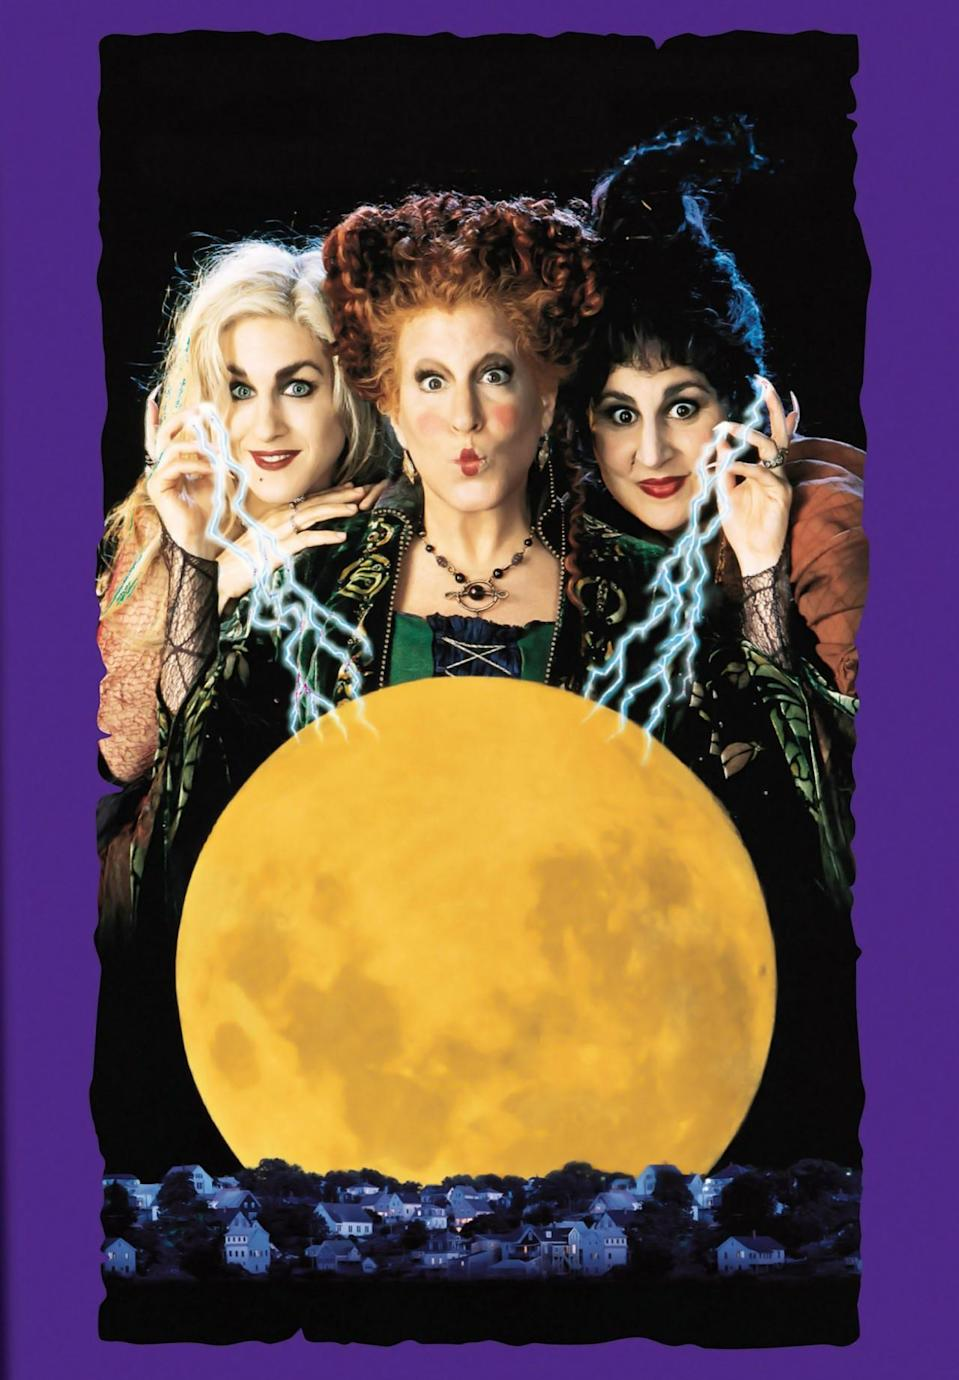 <p>This cult comedy film — starring Bette Midler, Sarah Jessica Parker, and Kathy Najimy— is about a trio of Salem witches from 1693, the Sanderson Sisters, who get resurrected by a virgin (yes, a virgin) in the 20th century. They are horrified to find out that Halloween has become a holiday. <i>(Source: Everett Collection)</i></p>